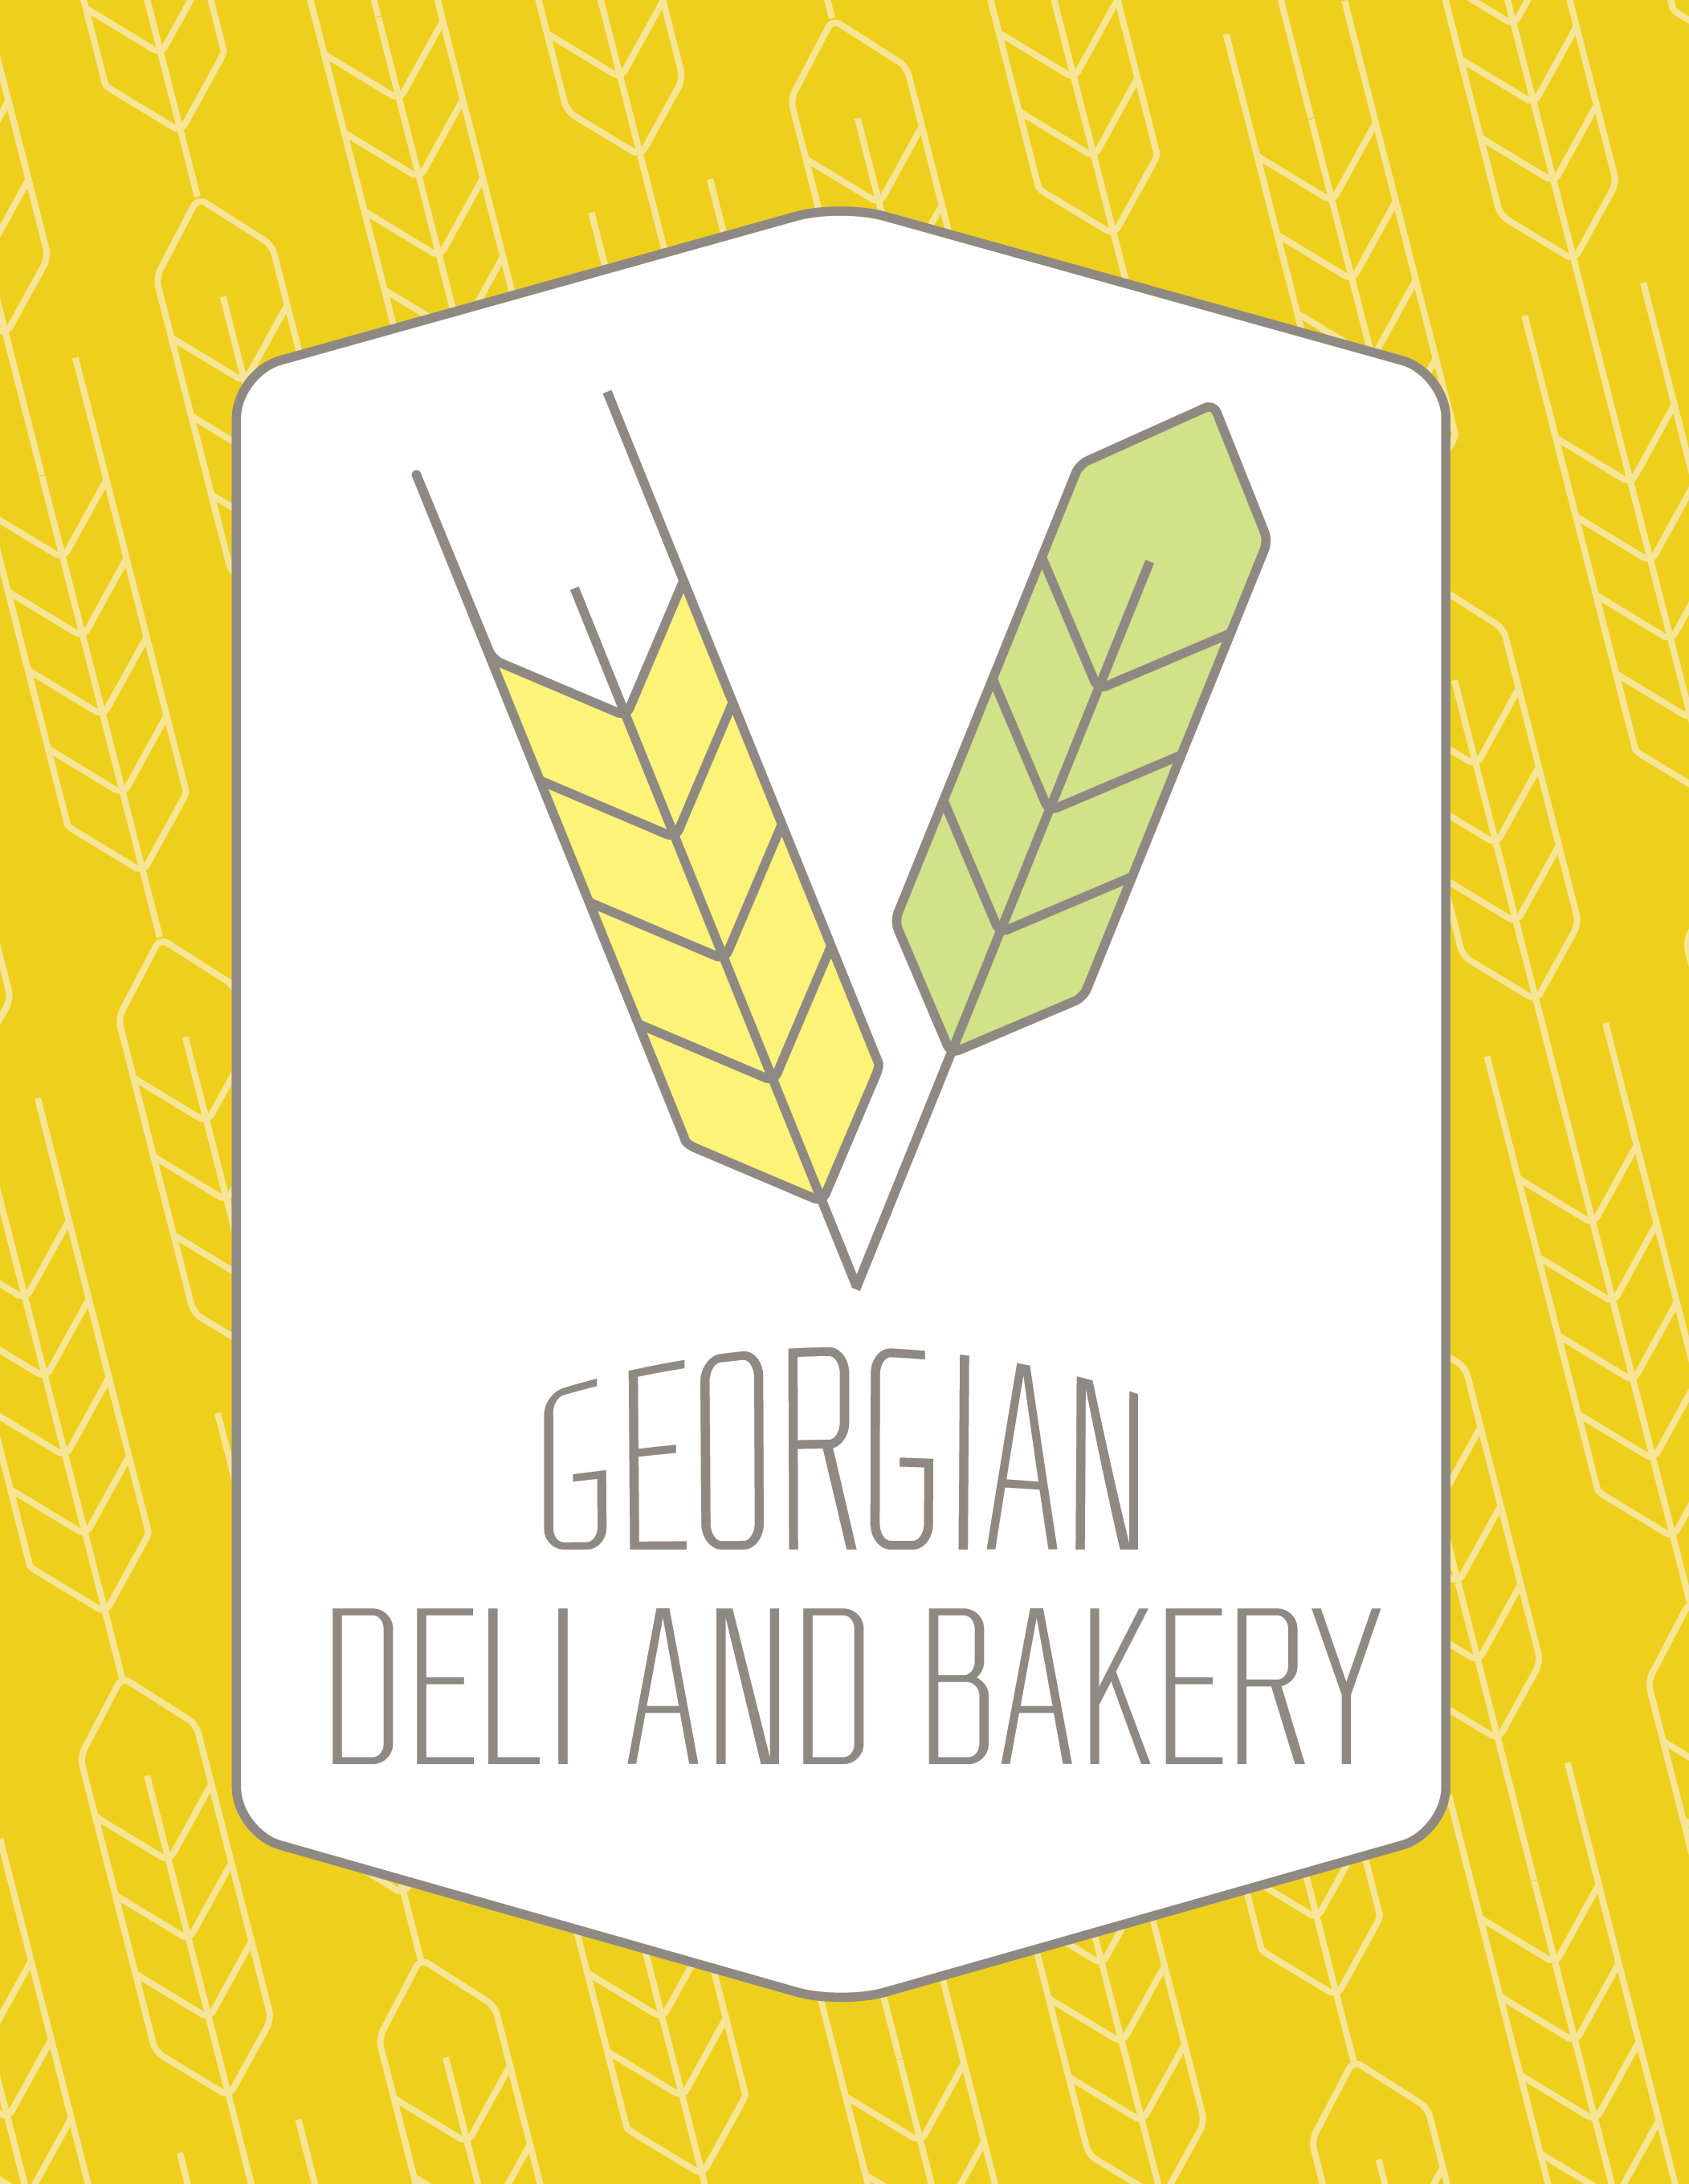 Georgian Deli and Bakery